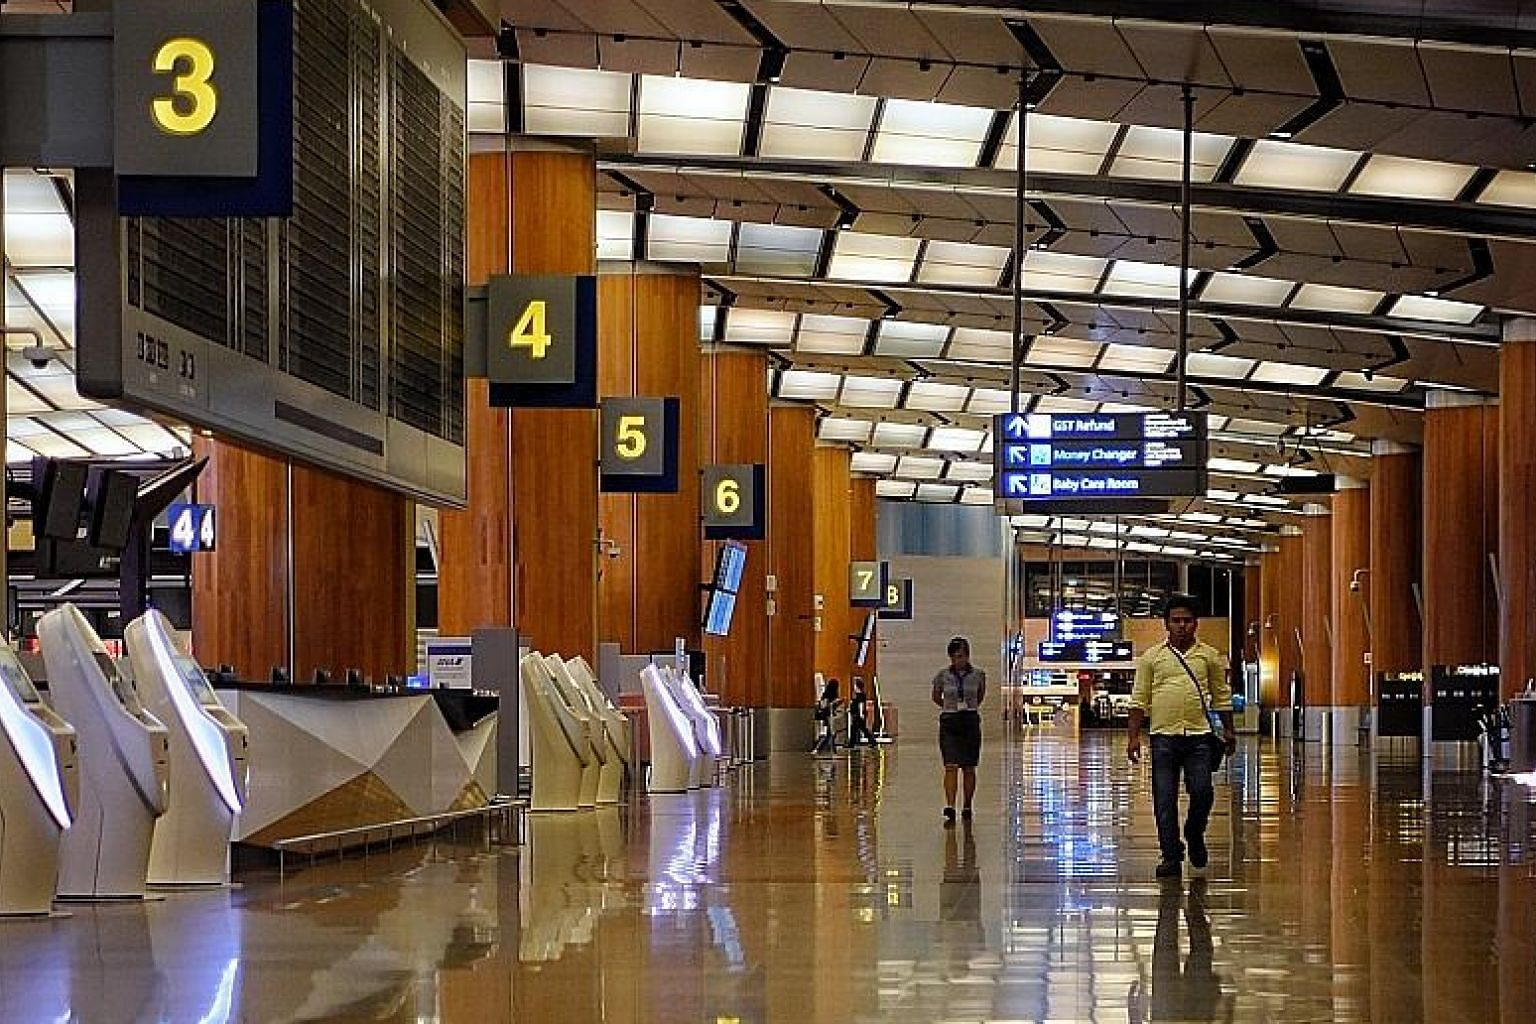 A near-empty Changi Airport T2 yesterday. Changi Airport Group said it decided to halt T2 operations in view of the steep fall in passenger traffic and the likelihood that air travel demand will not recover in the near term. ST PHOTO: MARK CHEONG